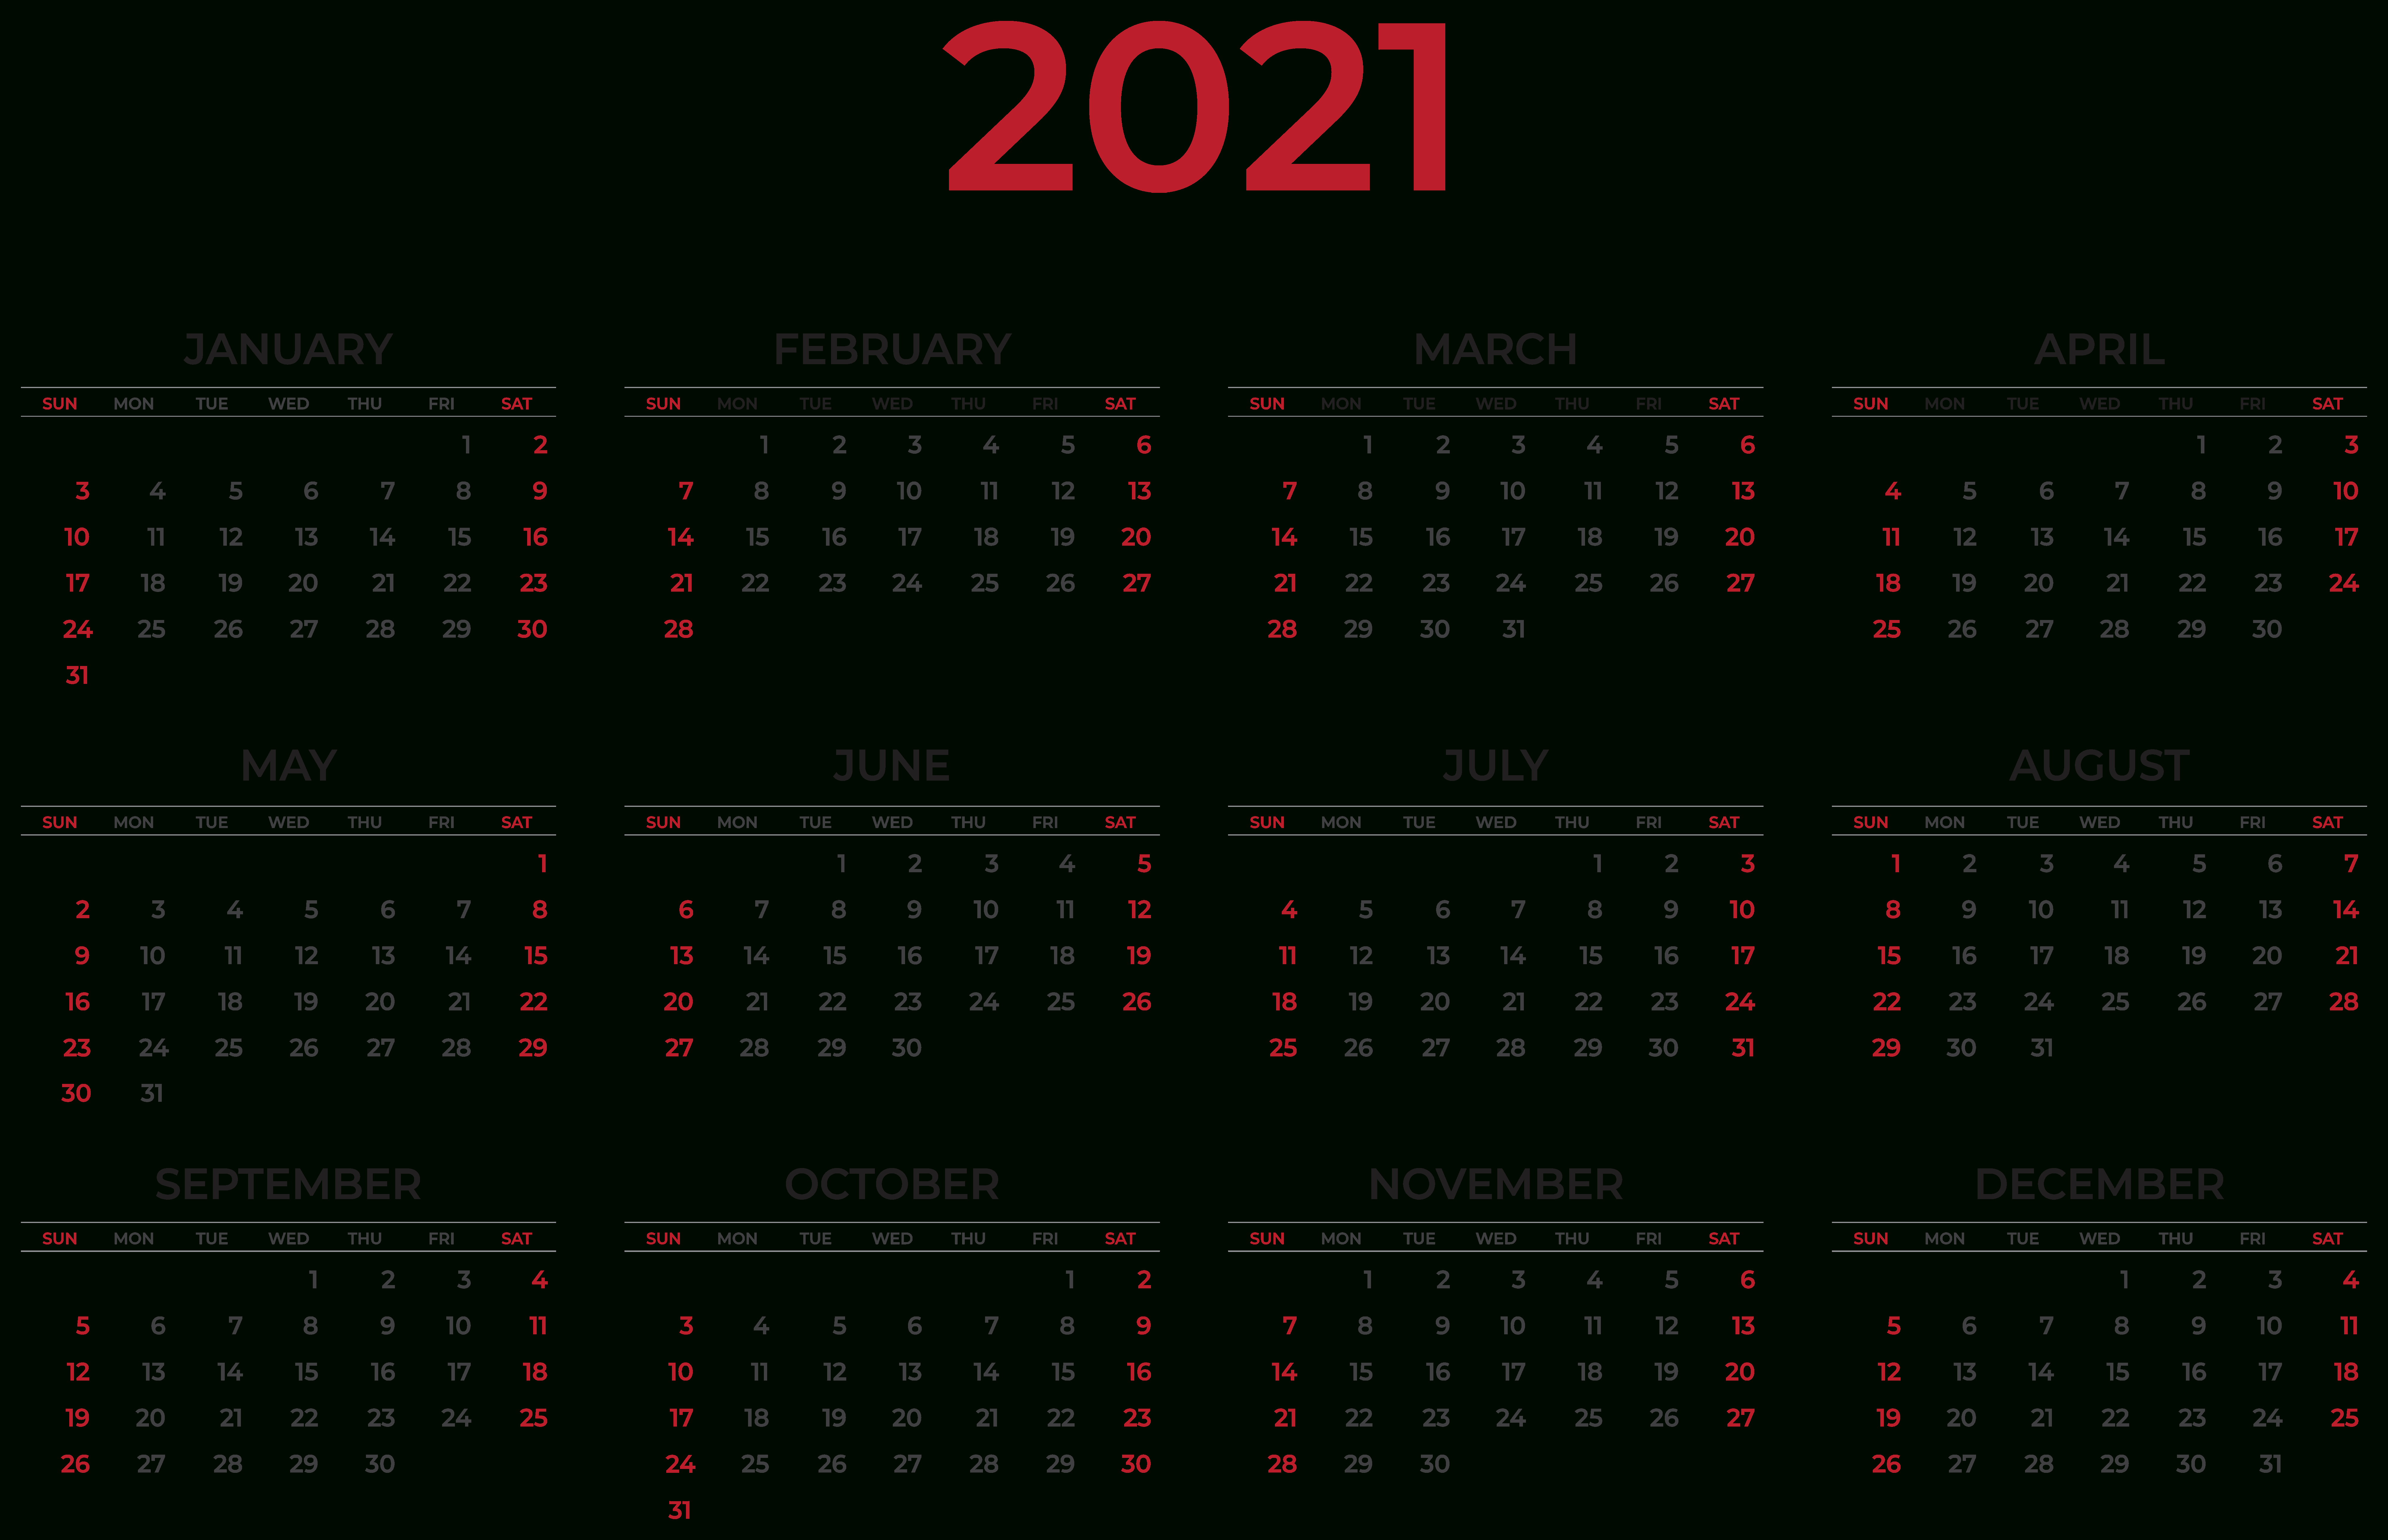 2021 Calendar Wallpapers - Top Free 2021 Calendar